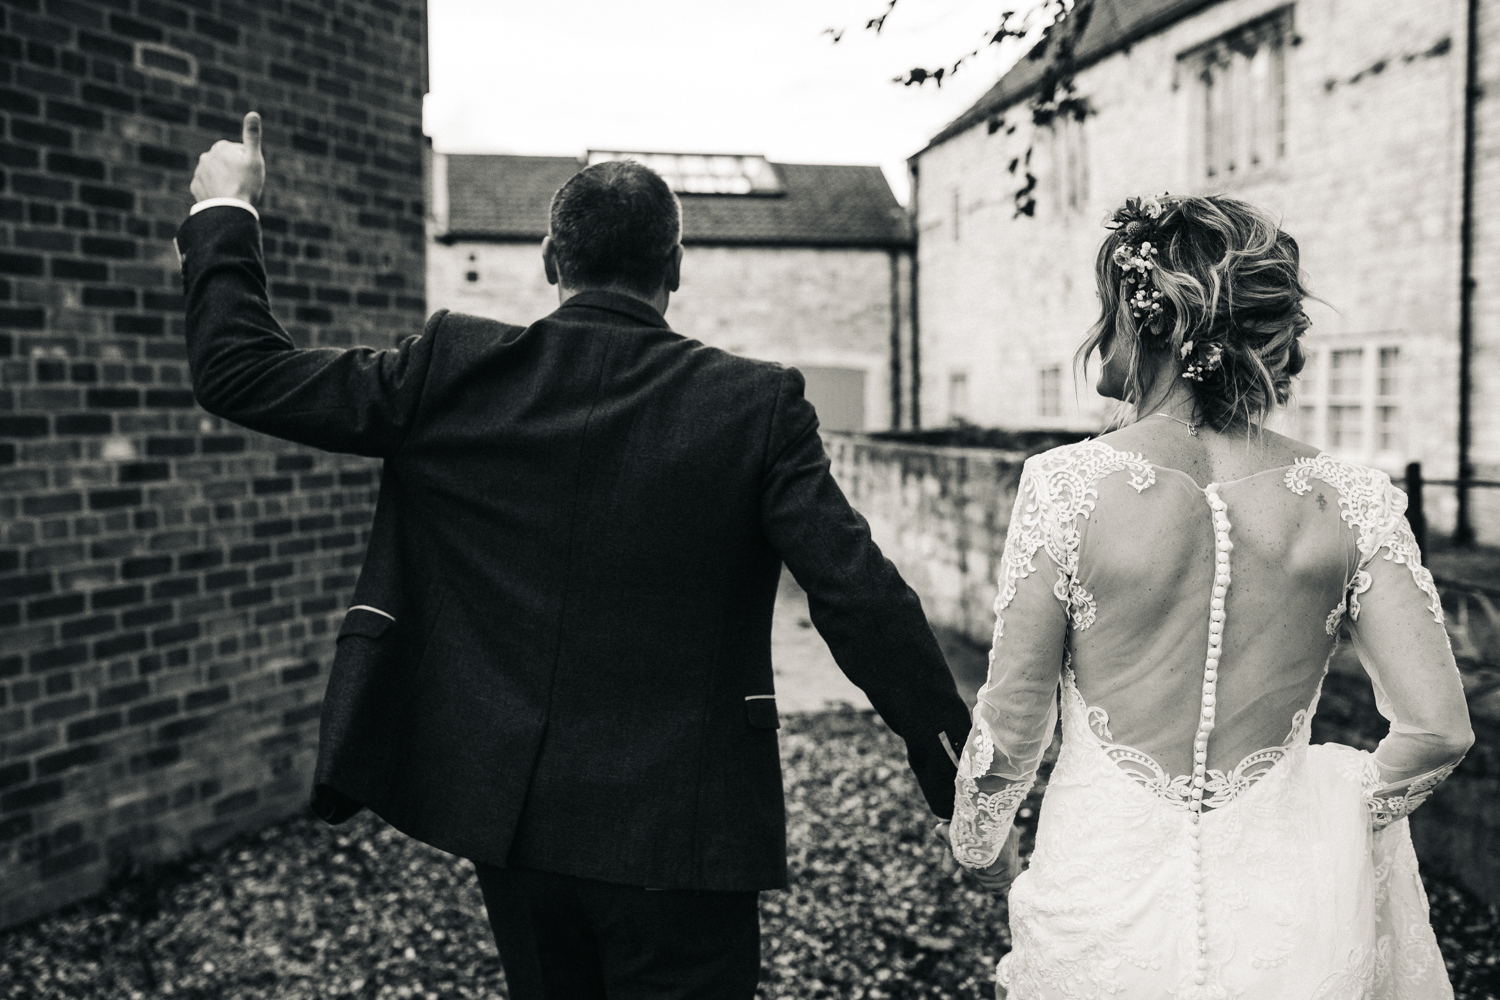 creative-relaxed-wedding-photography-stop-motion-films-teesside-north-east-yorkshire-0047.jpg